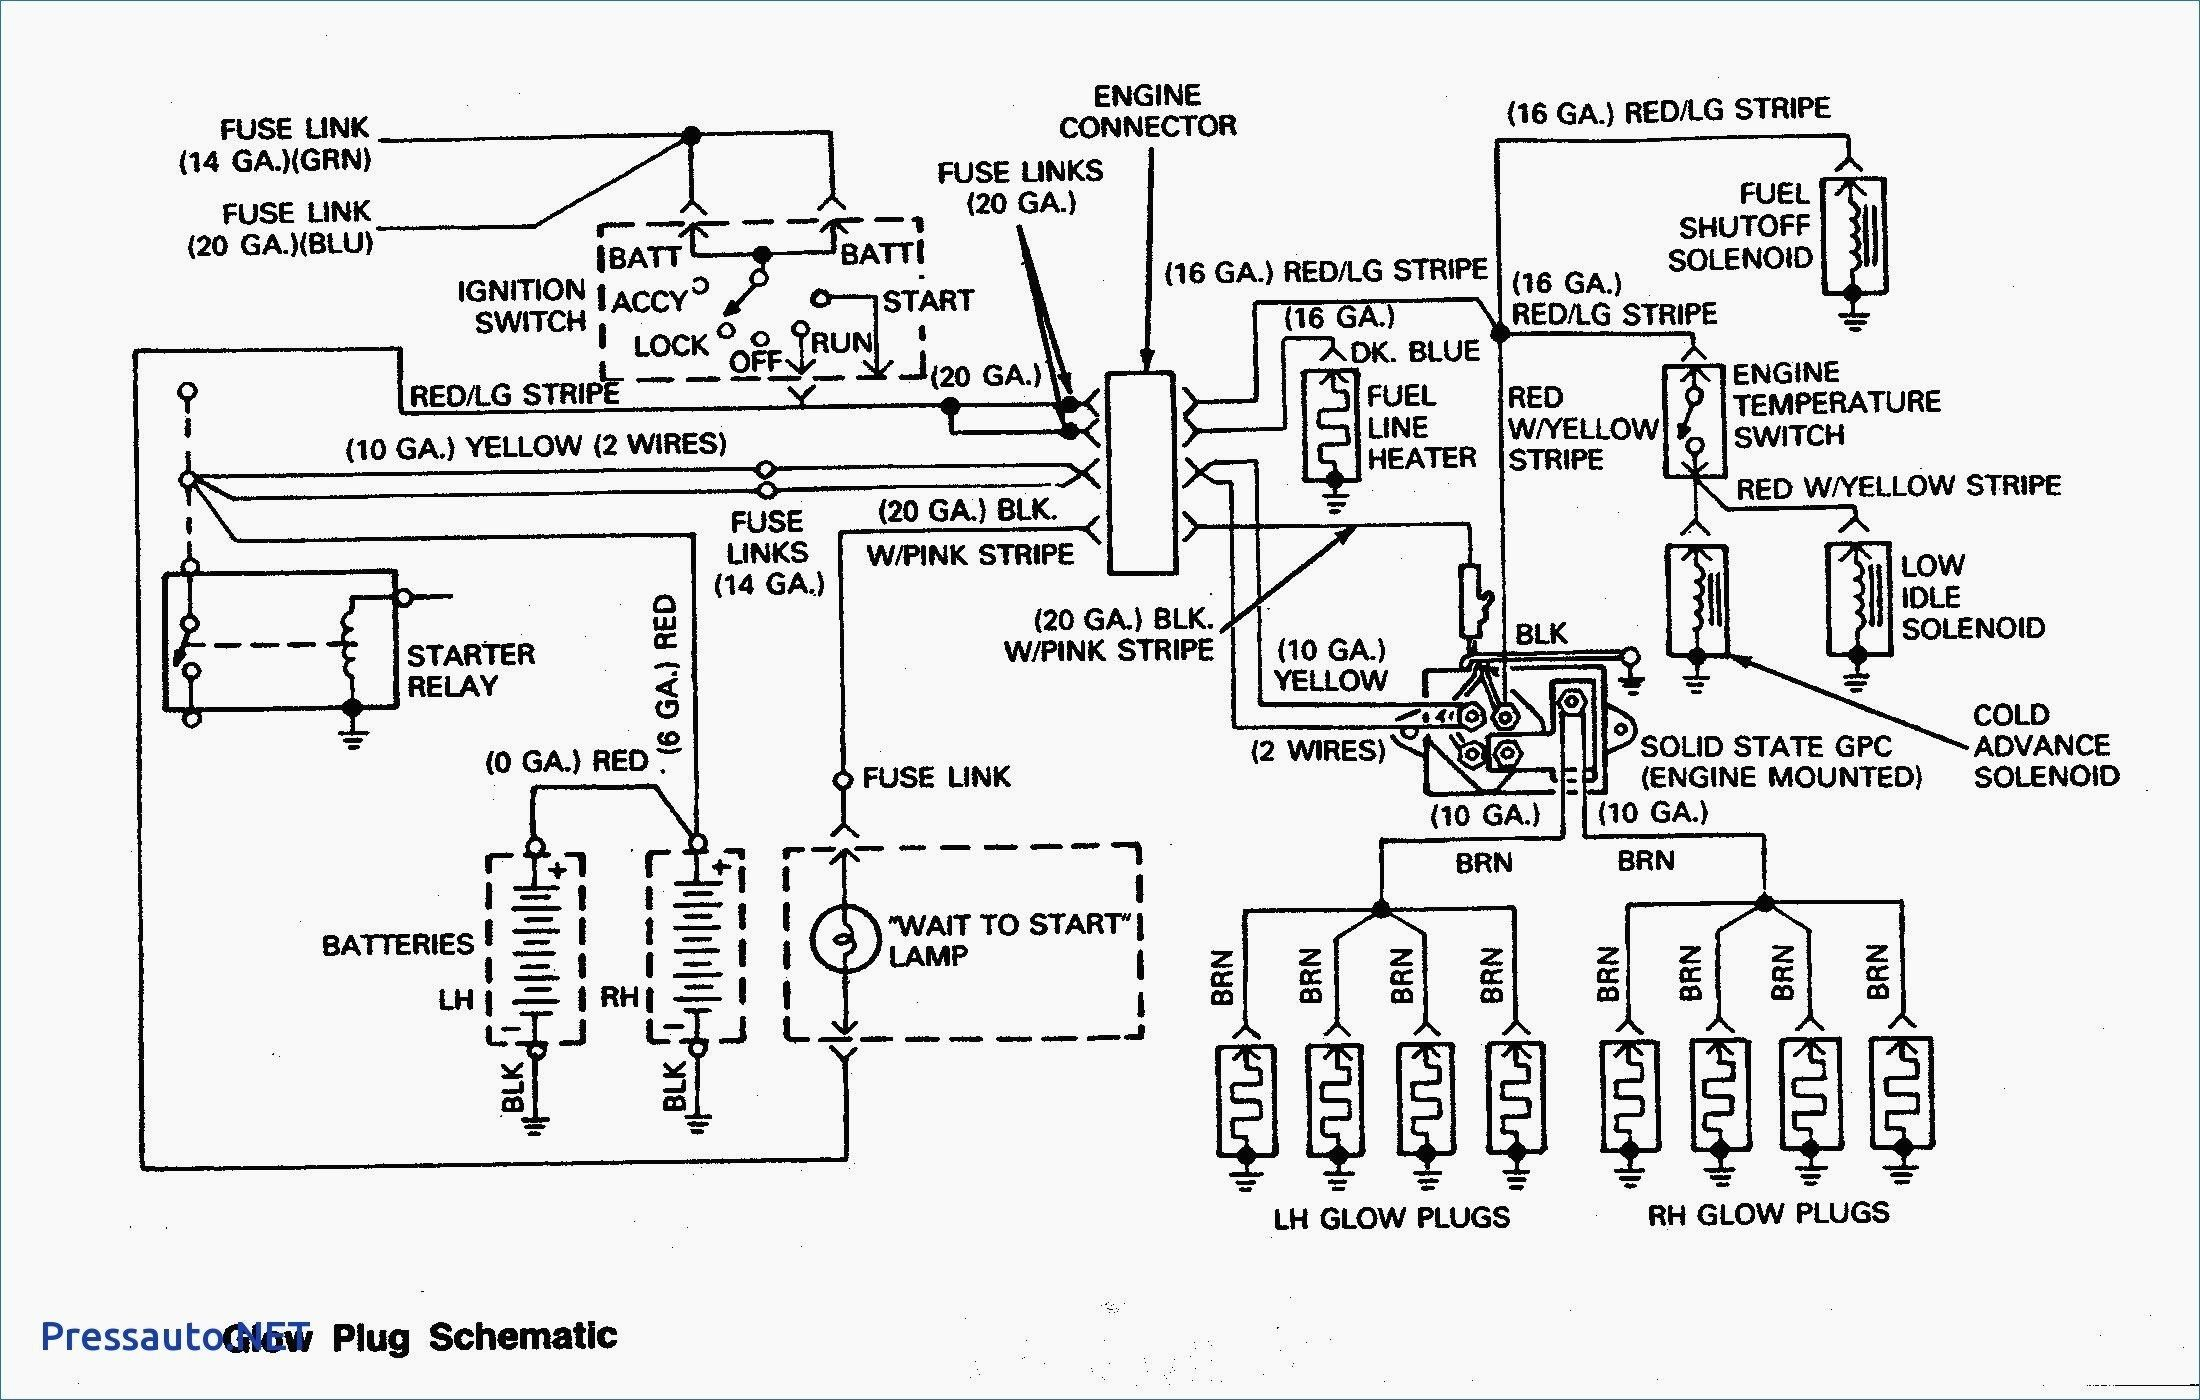 7 3 Idi Glow Plug Relay Wiring Diagram Archives Kobecityinfo Regarding 7 3 Idi Glow Plug Controller Wiring Diagram Engine Tune Engineering Diagram